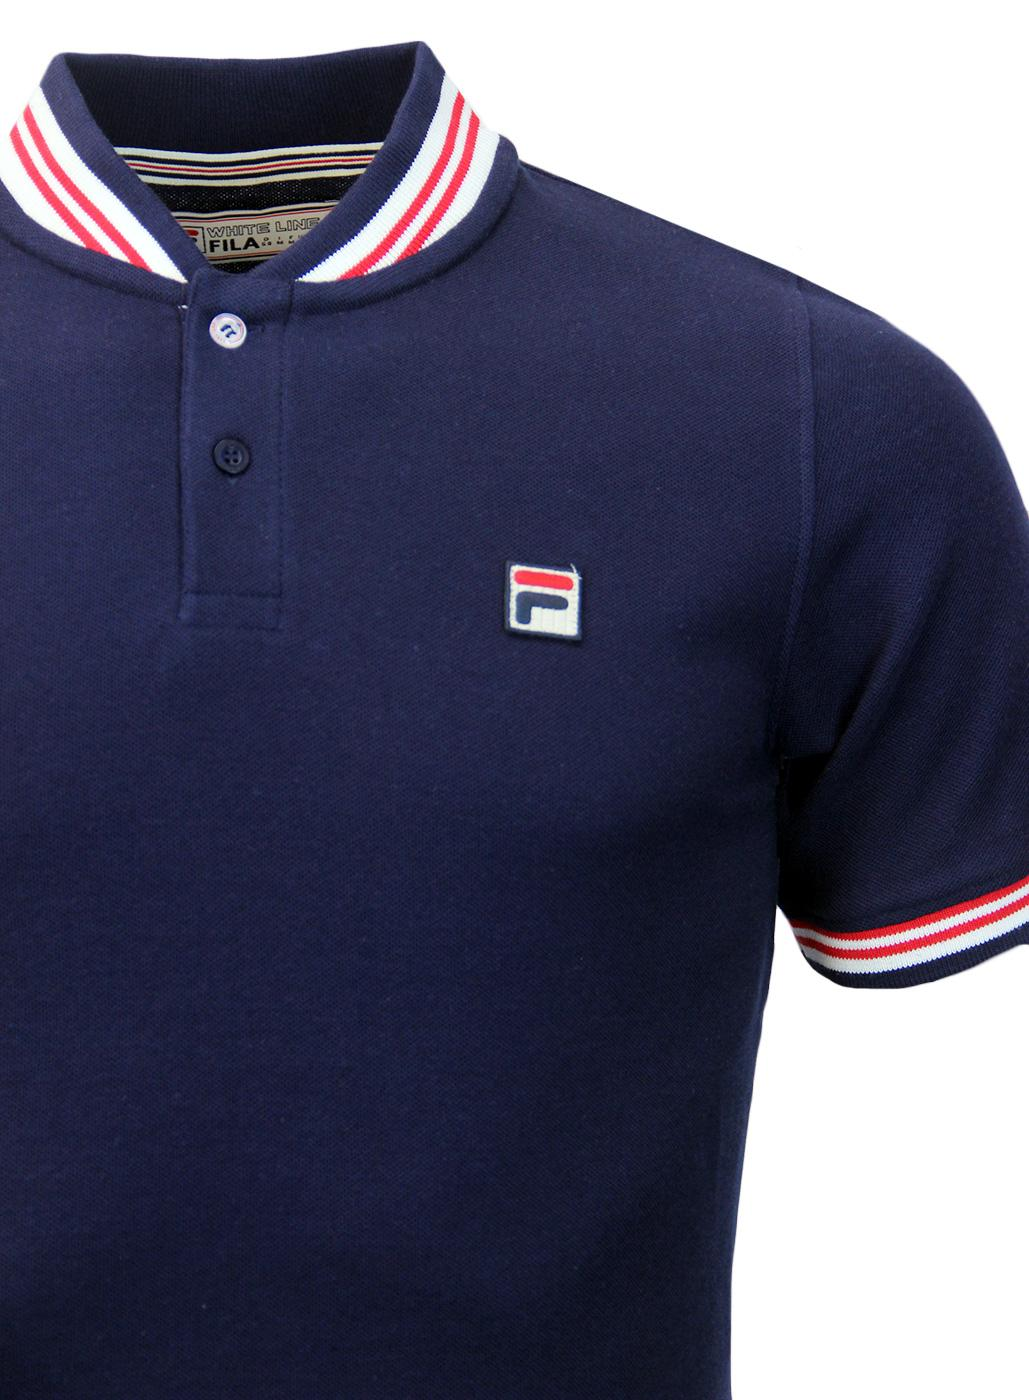 a897fa3dbf FILA VINTAGE Skipper Retro Seventies Pique Polo in Peacoat/Garden